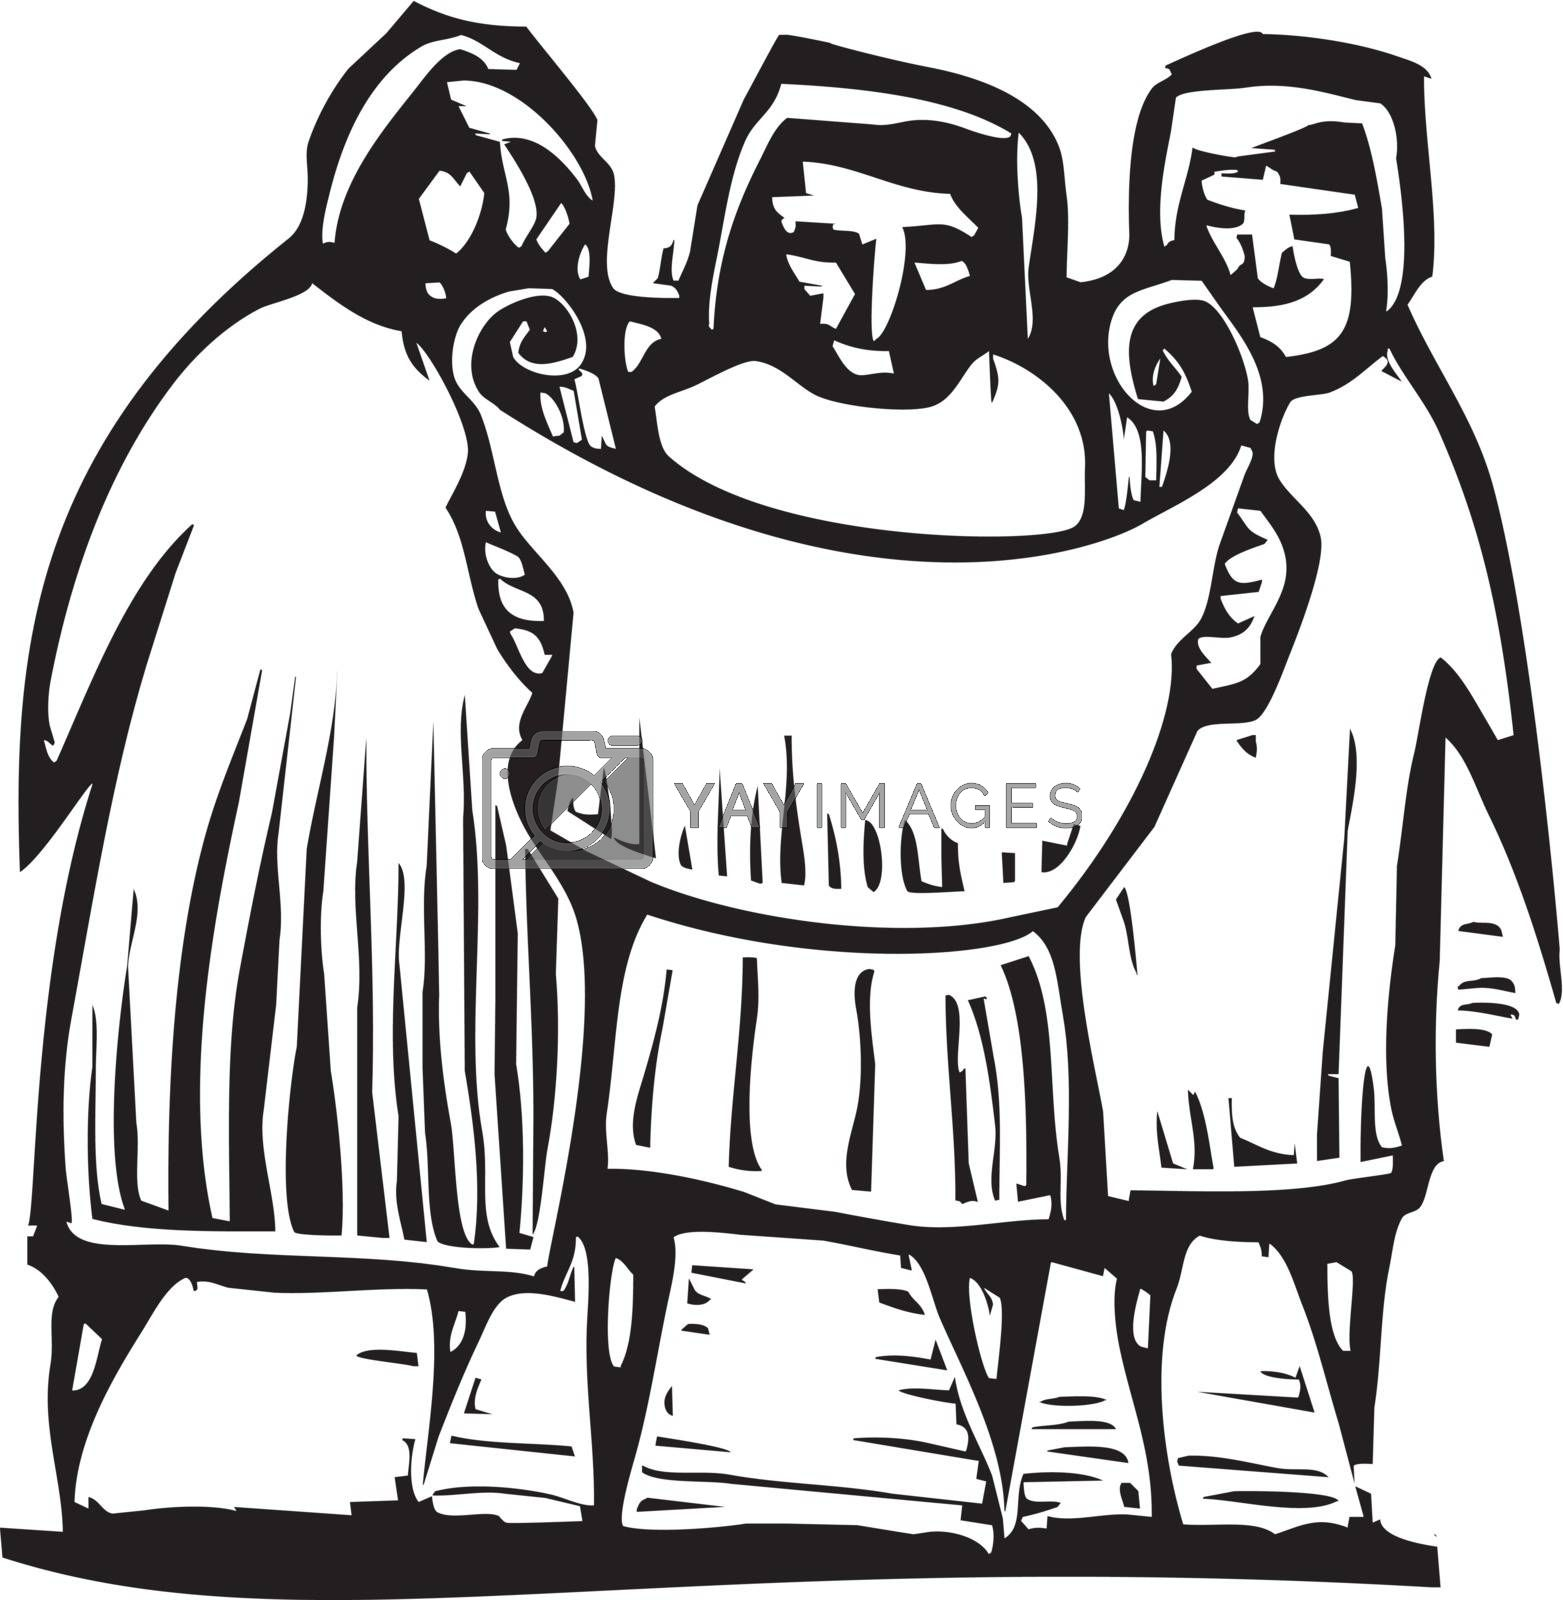 Woodcut style expressionist image of three people looking at a map or document.